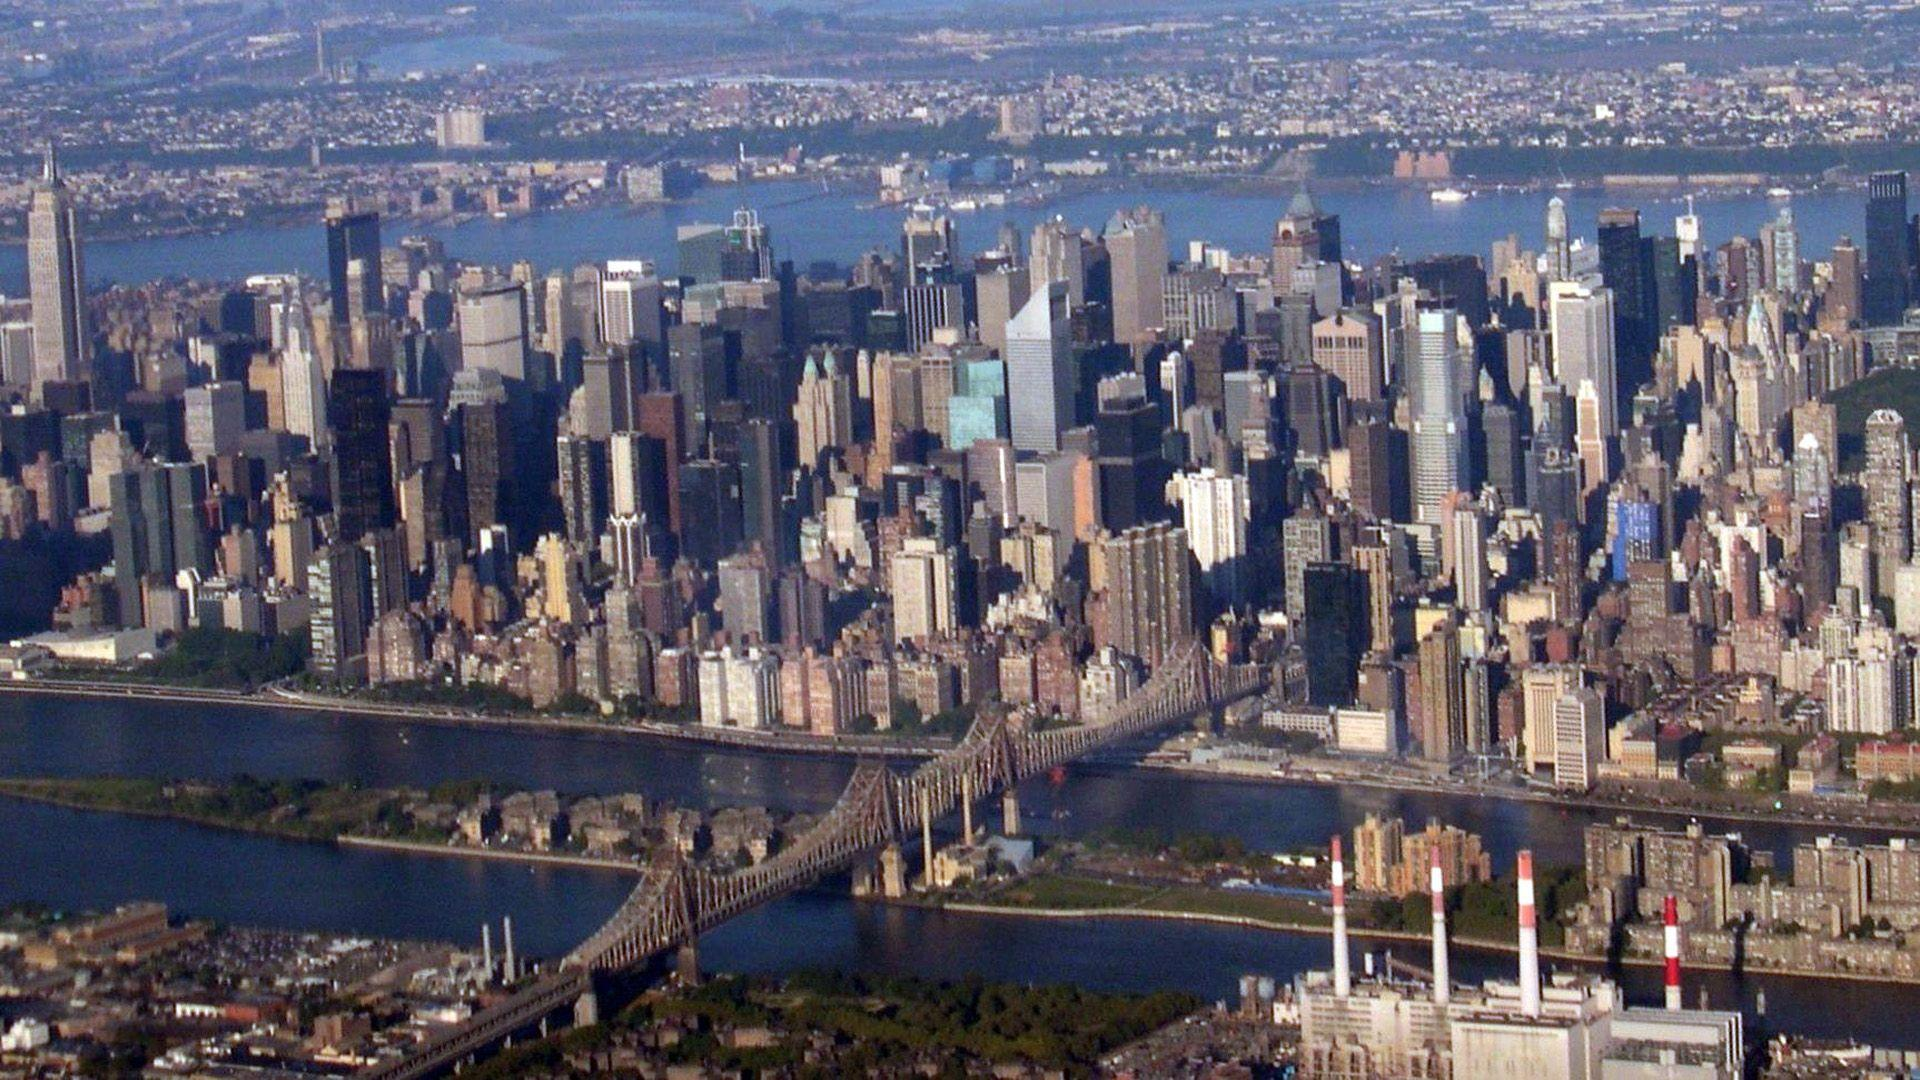 Wallpapers of new york city wallpaper cave - New york city wallpaper hd pictures ...